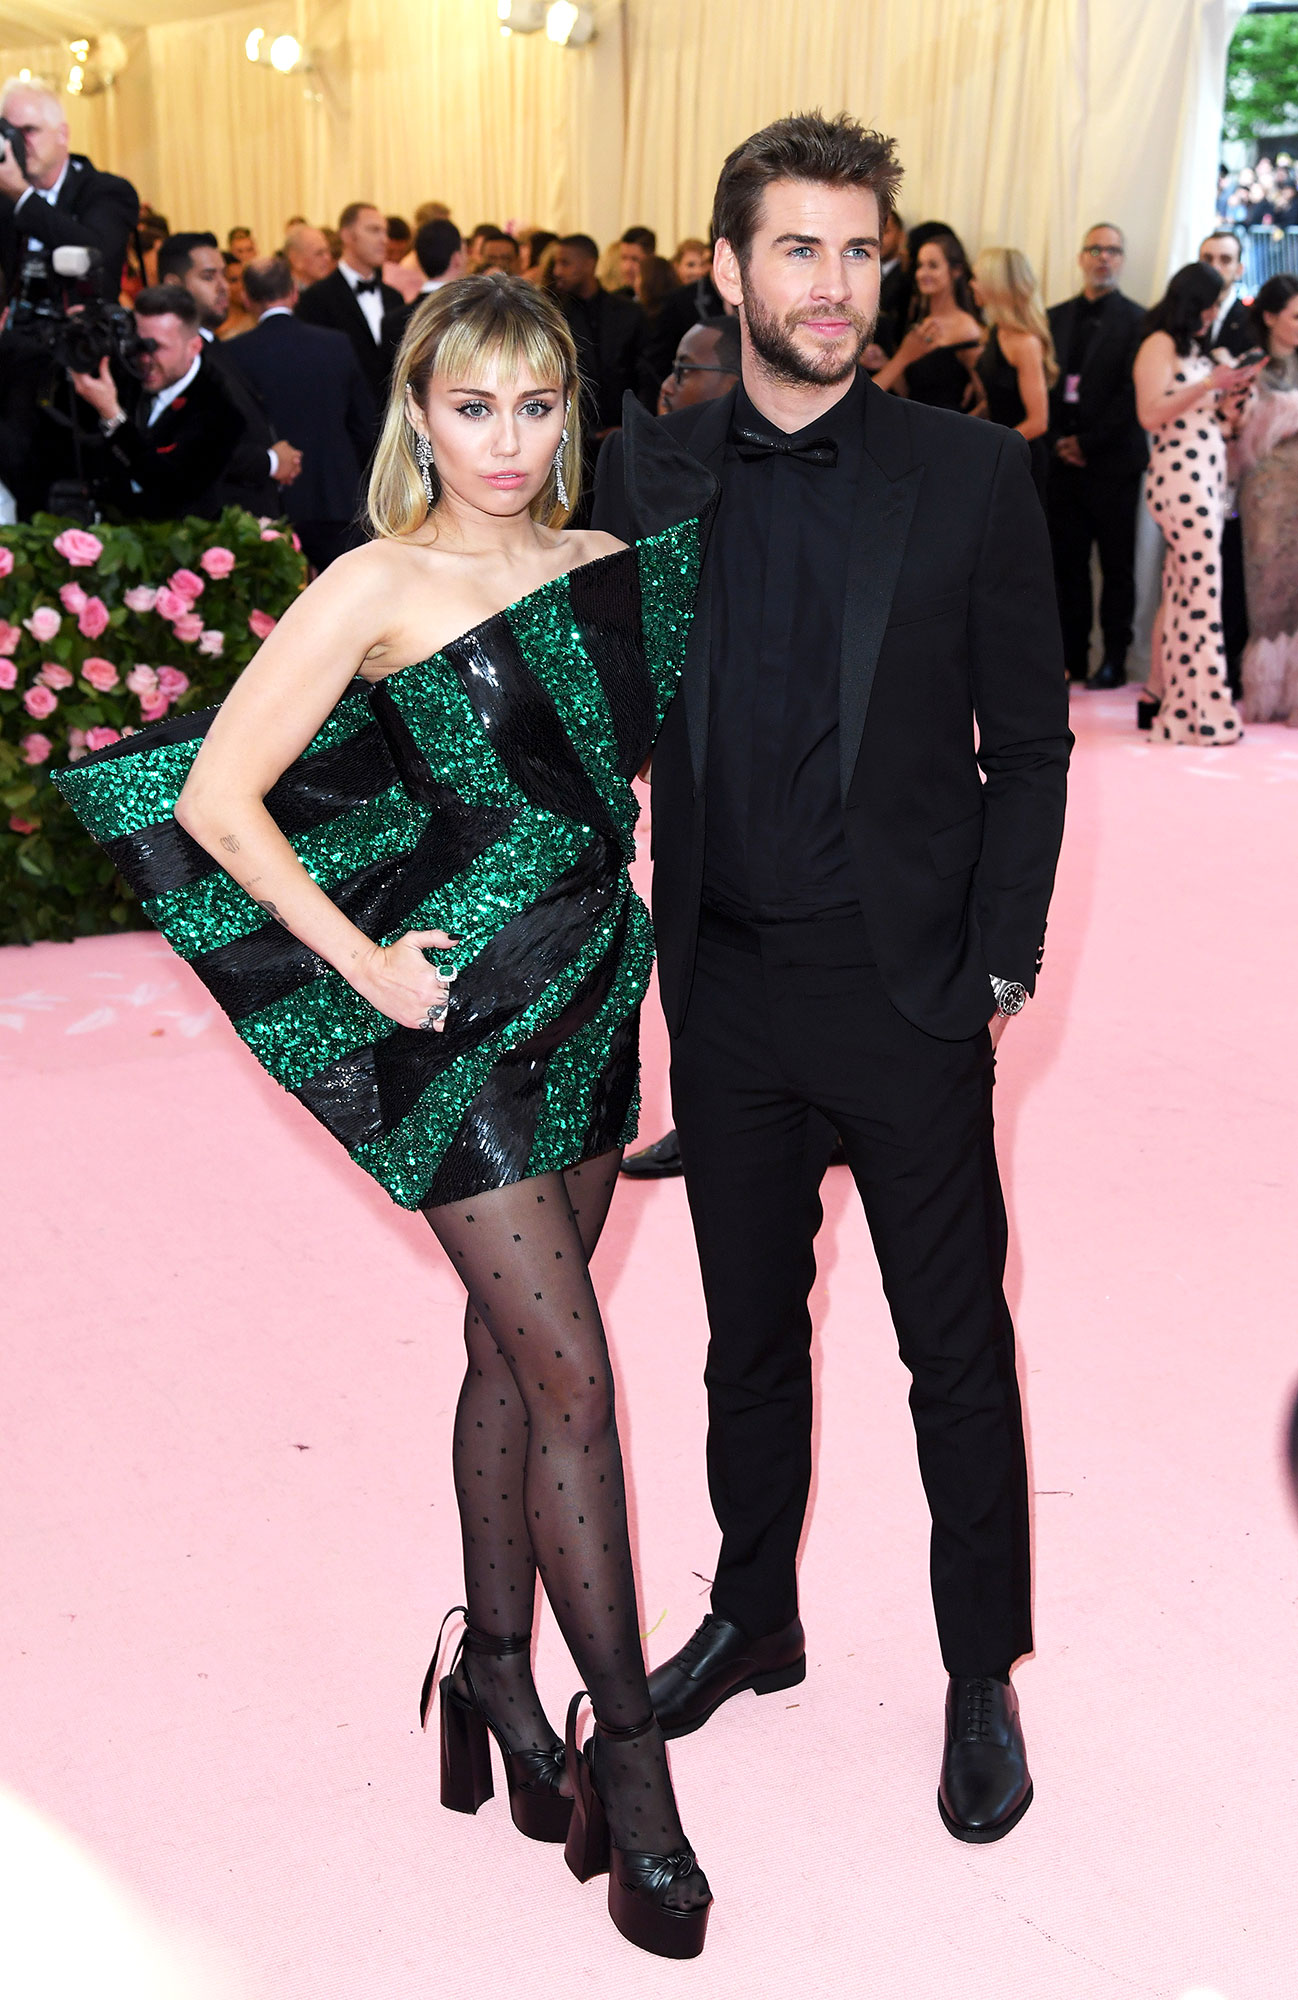 Miley Cyrus and Liam Hemsworth met gala 2019 couples - The husband and wife duo opted for complementary Saint Laurent looks.